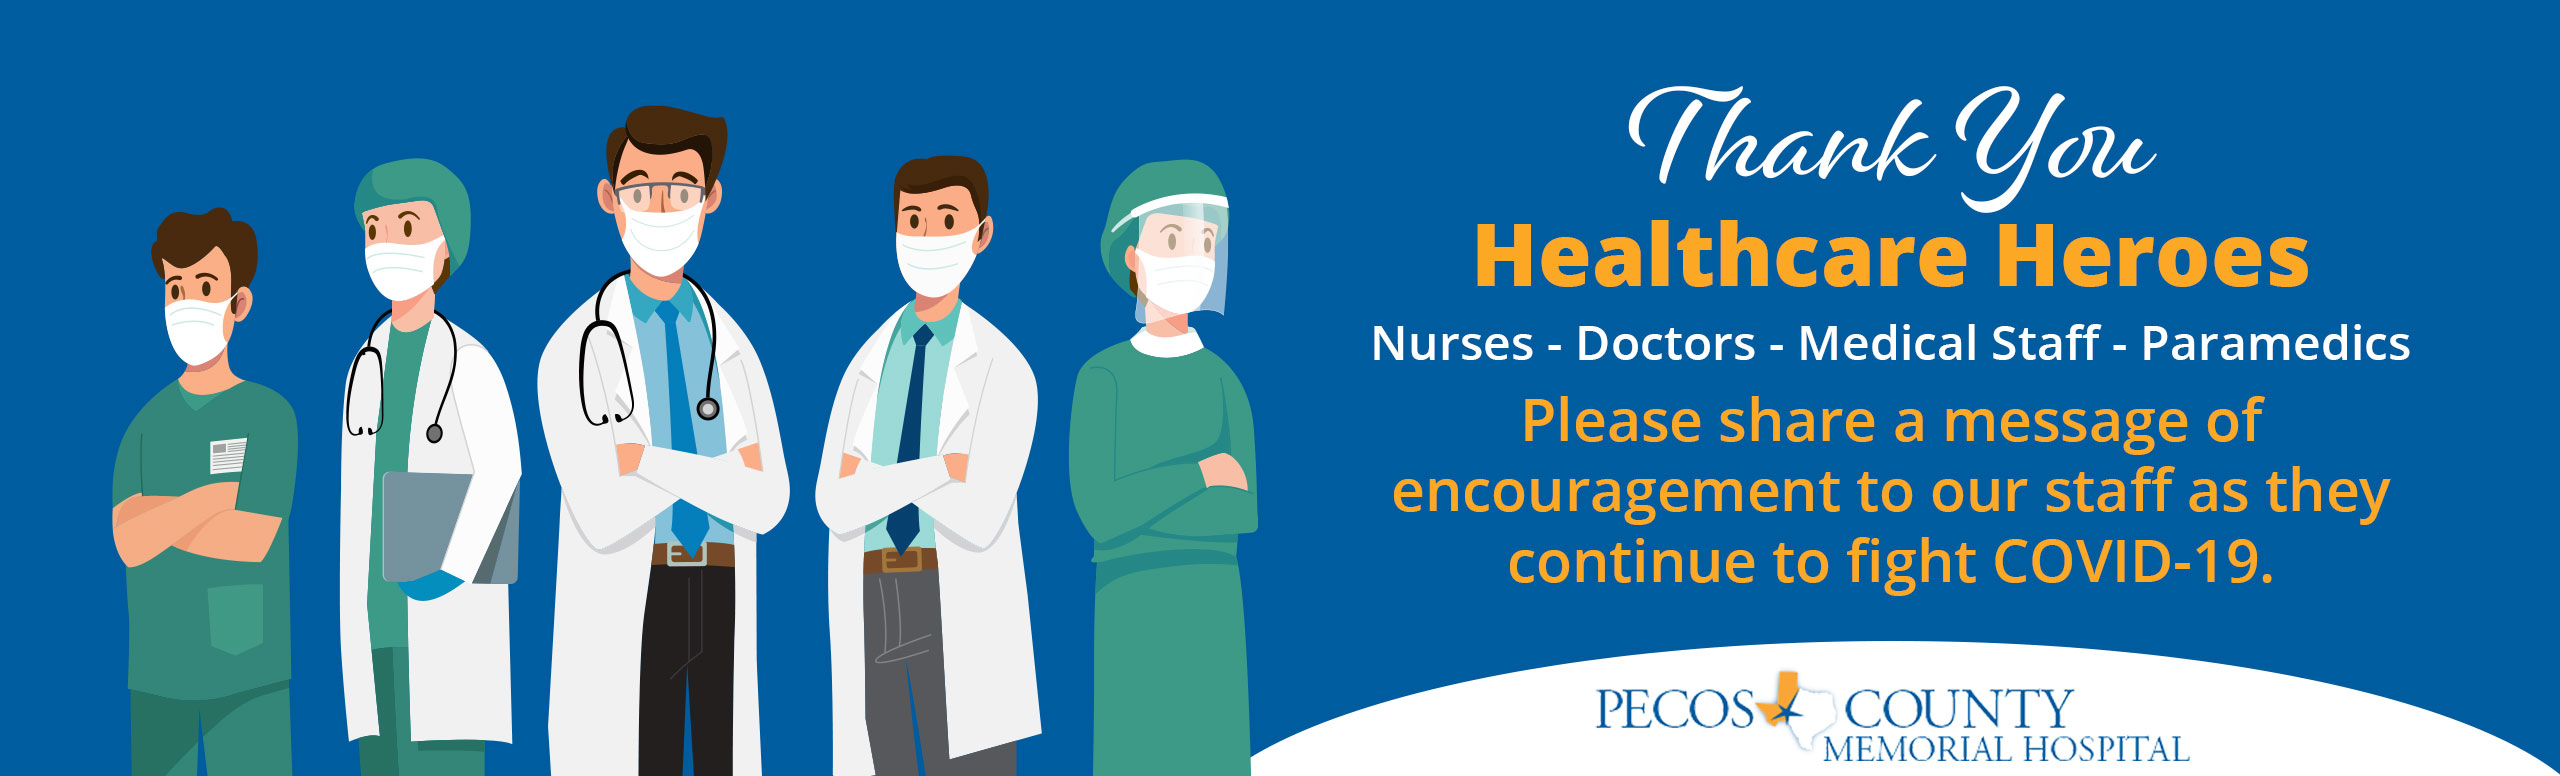 Thank you  Healthcare Heroes Nurses-Doctors-Medical Staff-Paramedics Please share a message of encouragement to our staff as they continue to fight COVID-19.